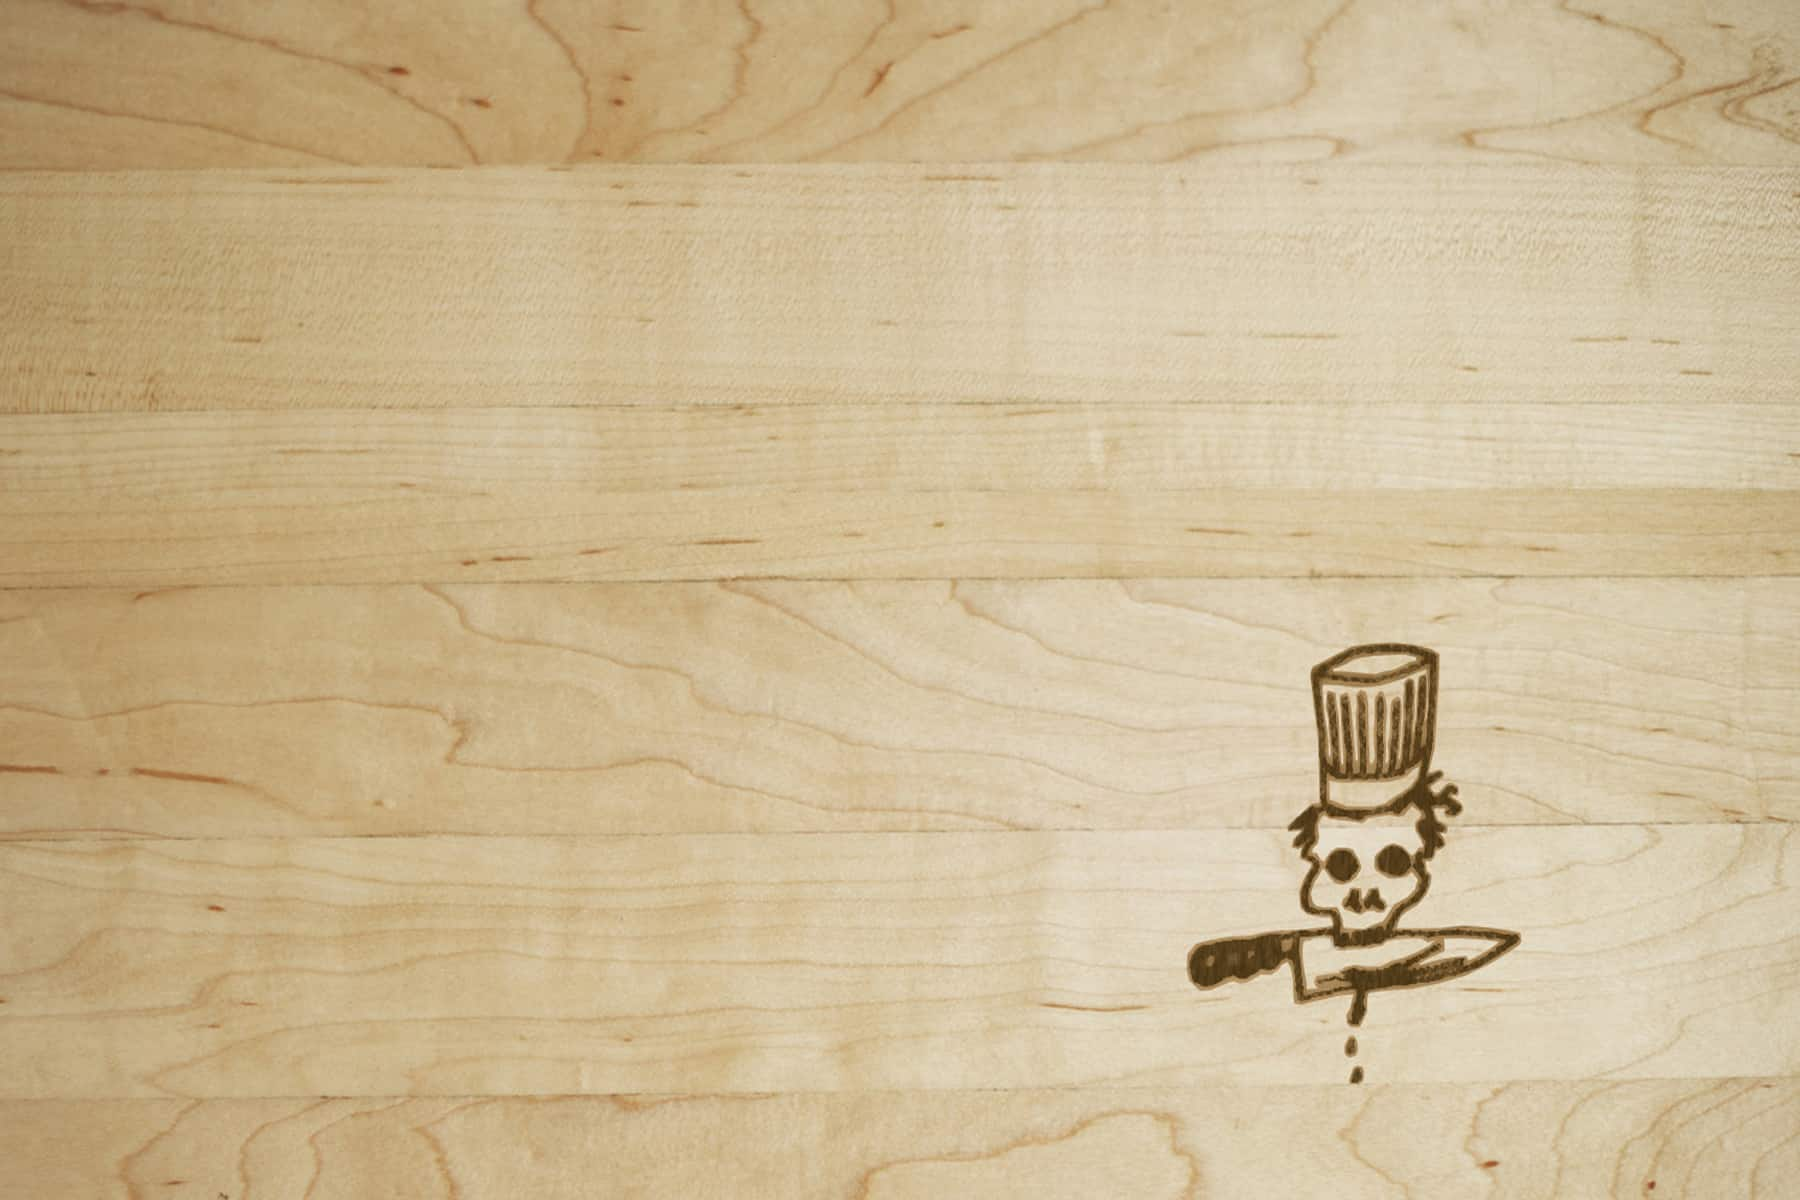 Wooden cutting board with a skull in a chef hat burned into it.